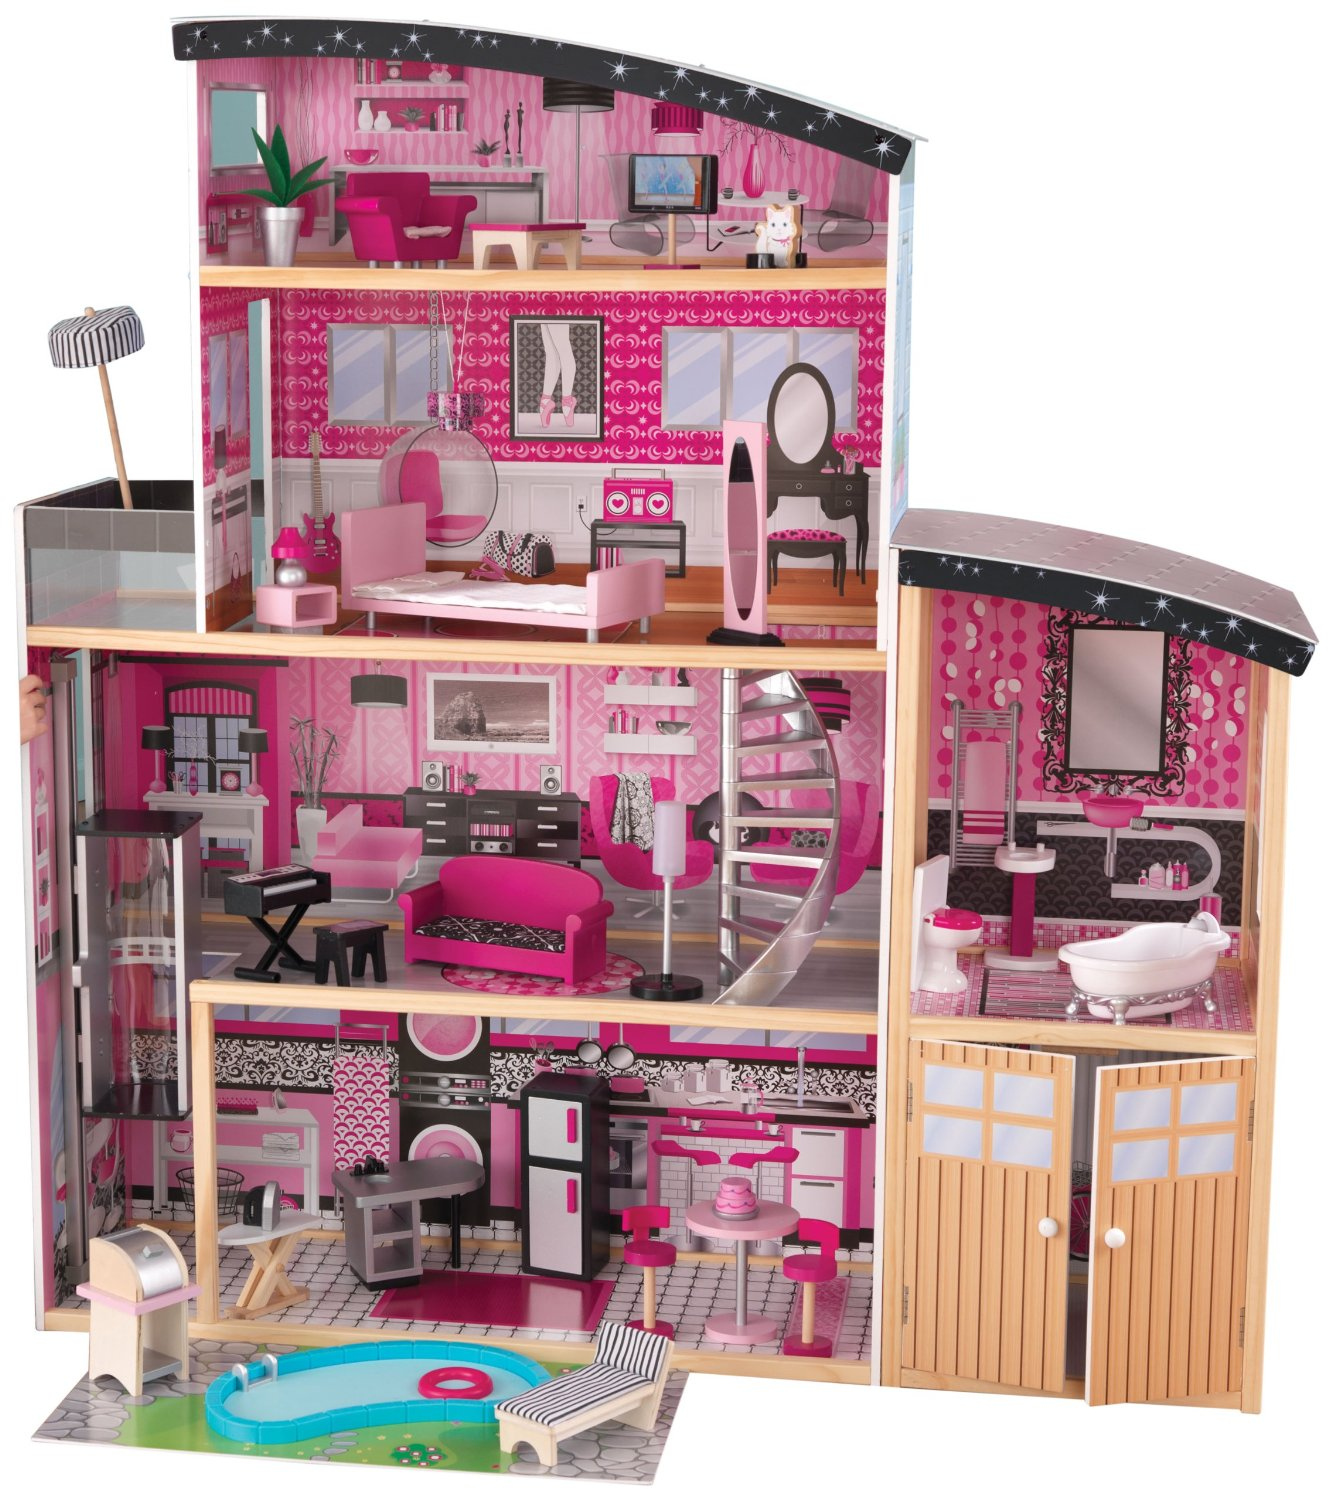 Awesome Kidkraft Dollhouse In Four Tier Design With Garage Made Of Wood For Nursery Decor Ideas